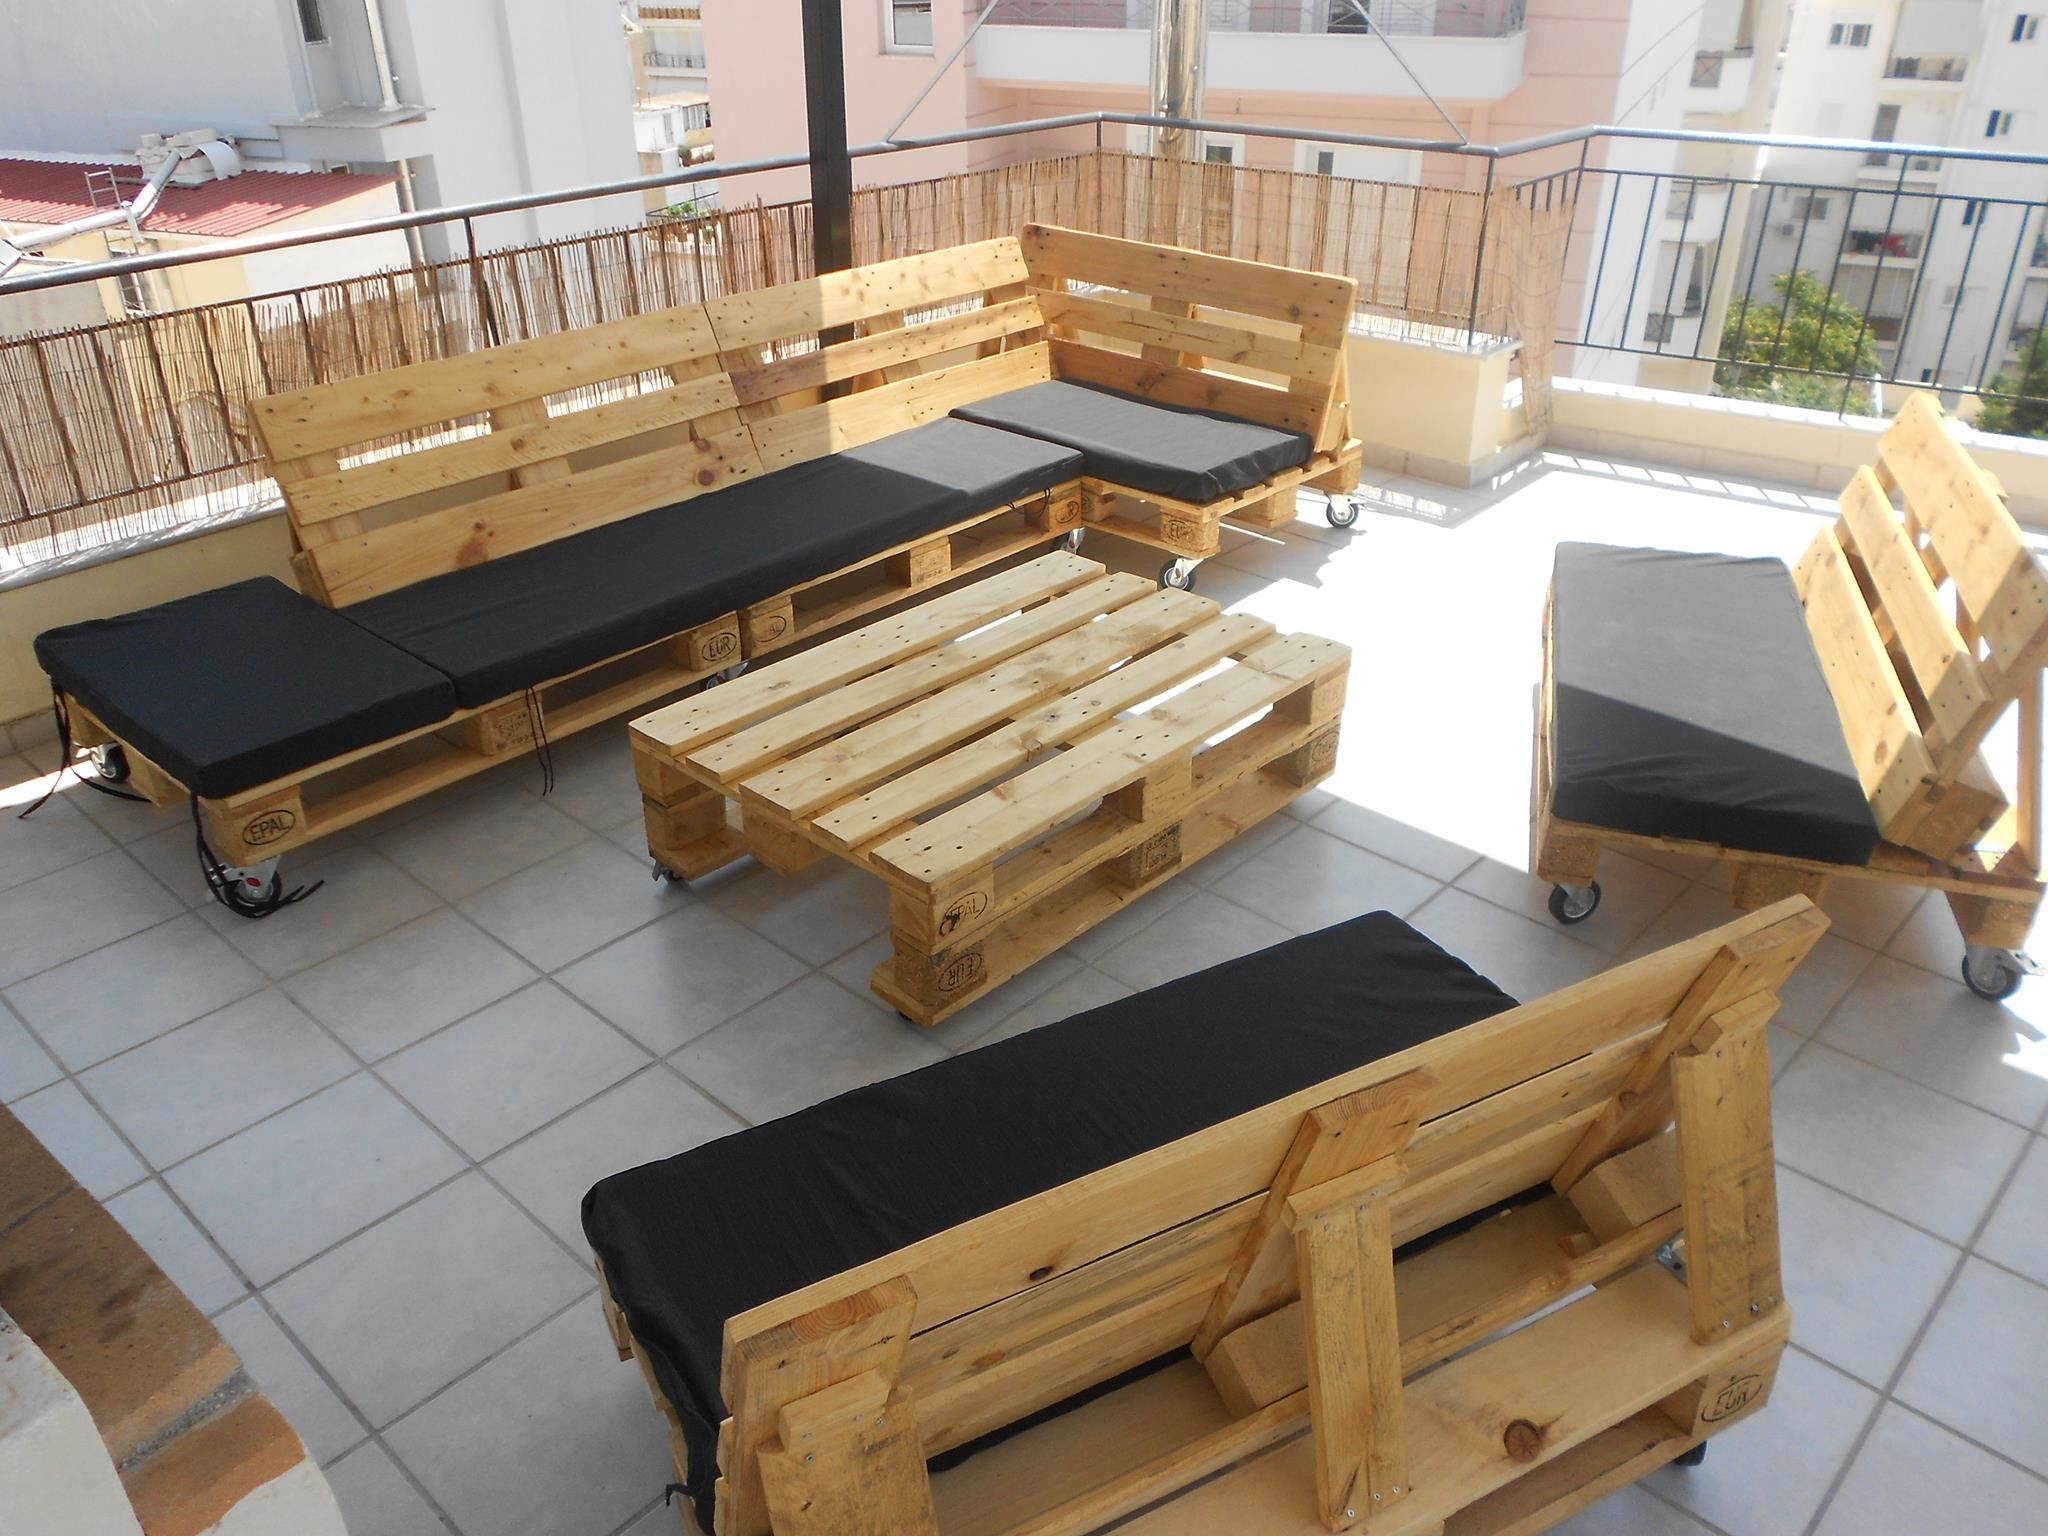 pallet crate furniture. Images For \u003e Cool Outdoor Wood Projects · Diy Pallet FurnitureWood Crate Furniture Pinterest